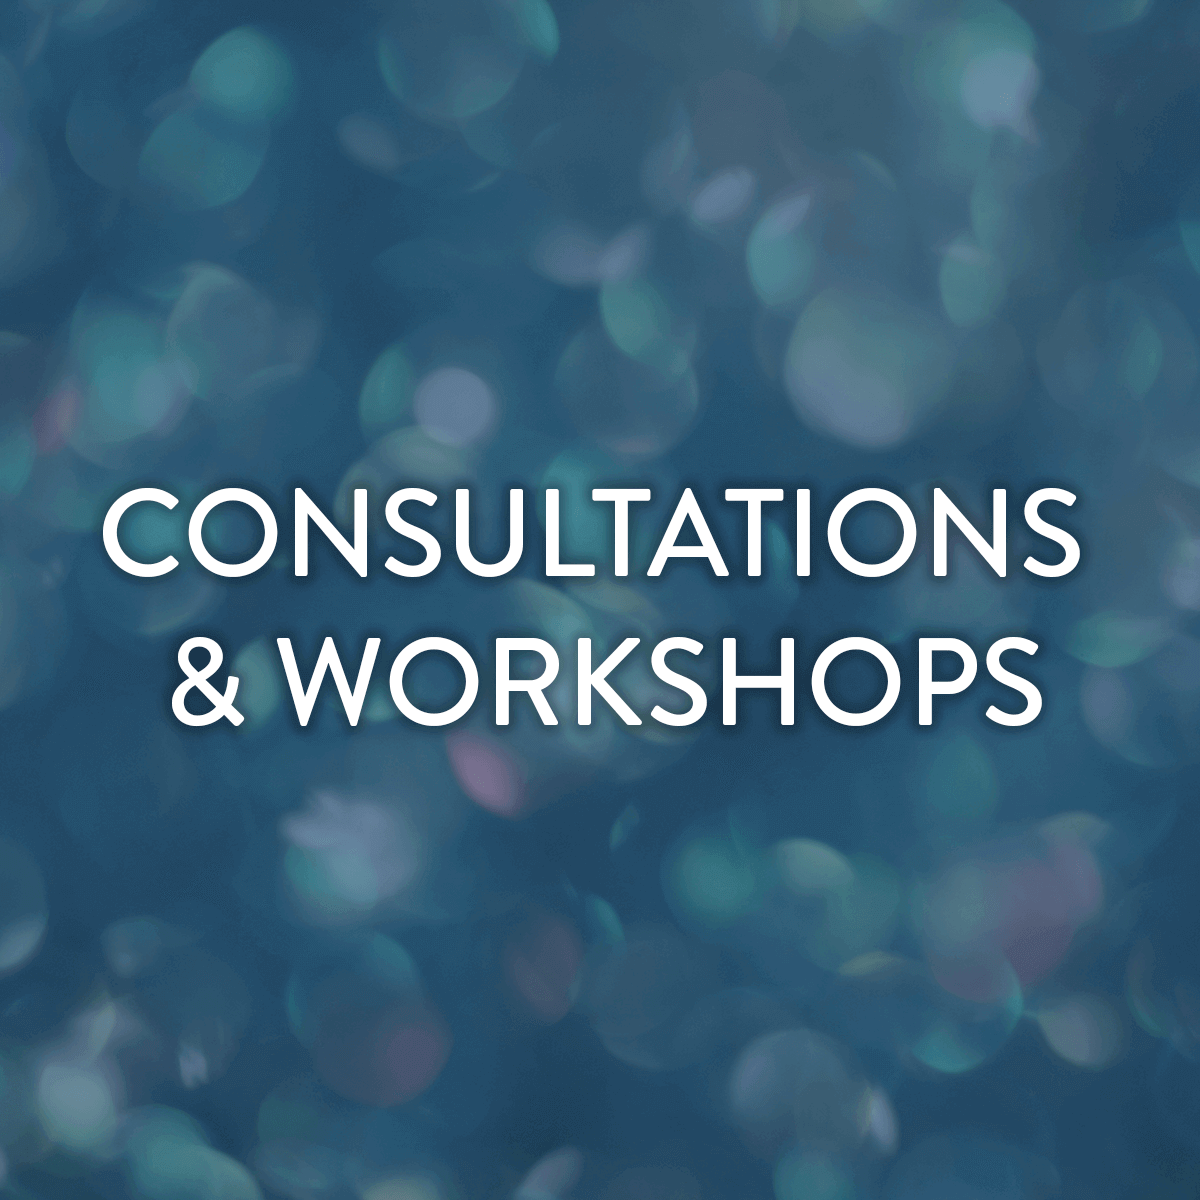 Consultations & Workshops